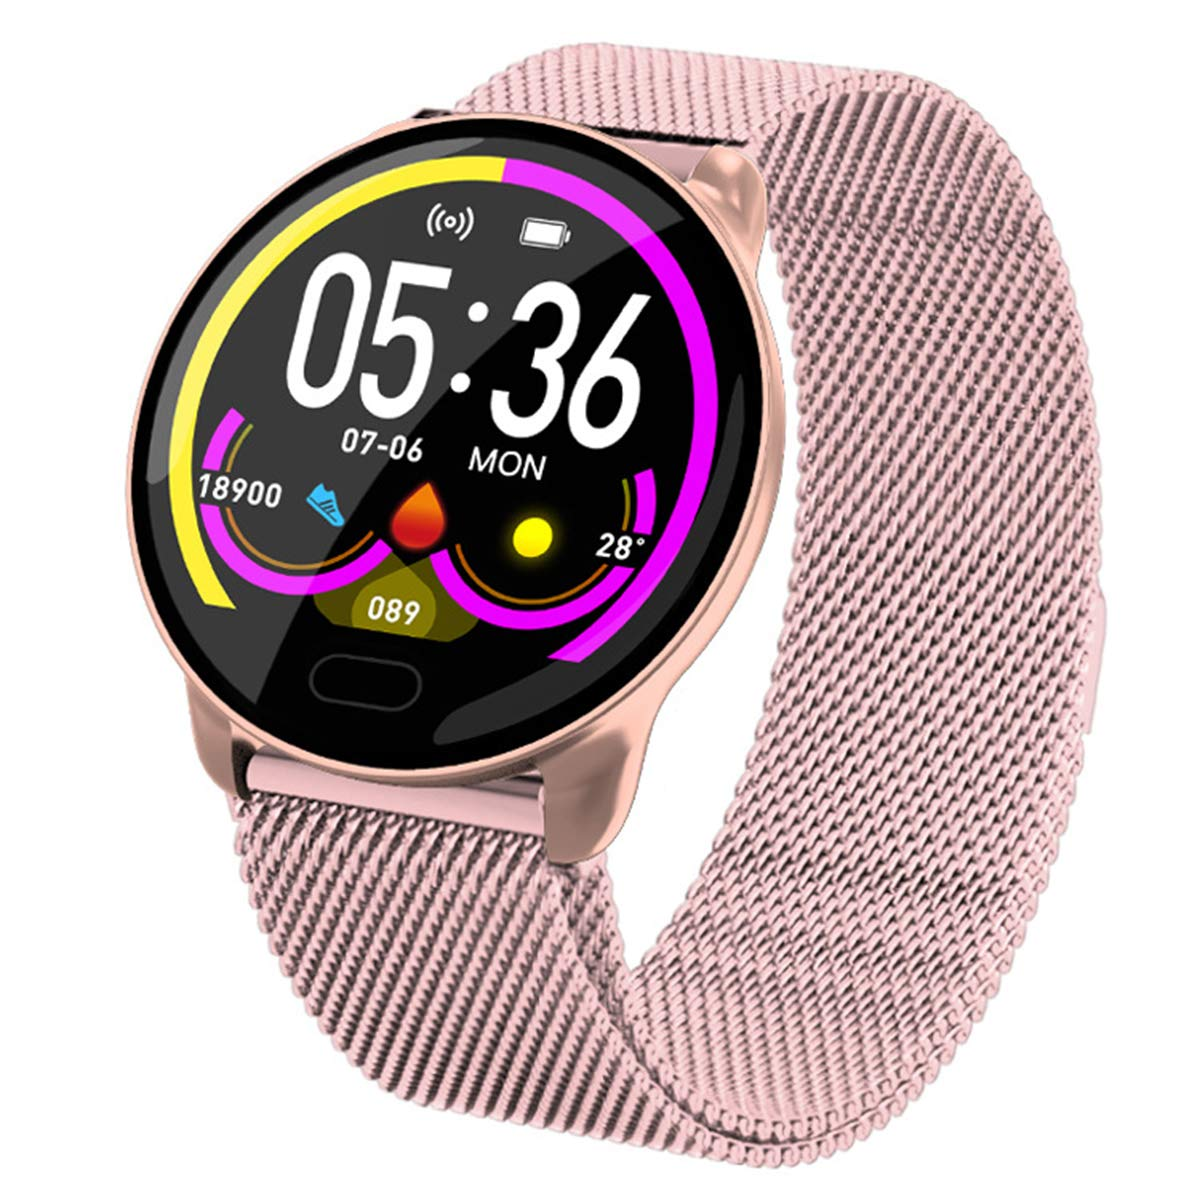 SPORS Round Screen Sports Intelligent Heart Rate Blood Pressure Monitoring Bracelet, Sleep Blood Oxygen Monitoring Call Reminder Watch-Pink by SPORS